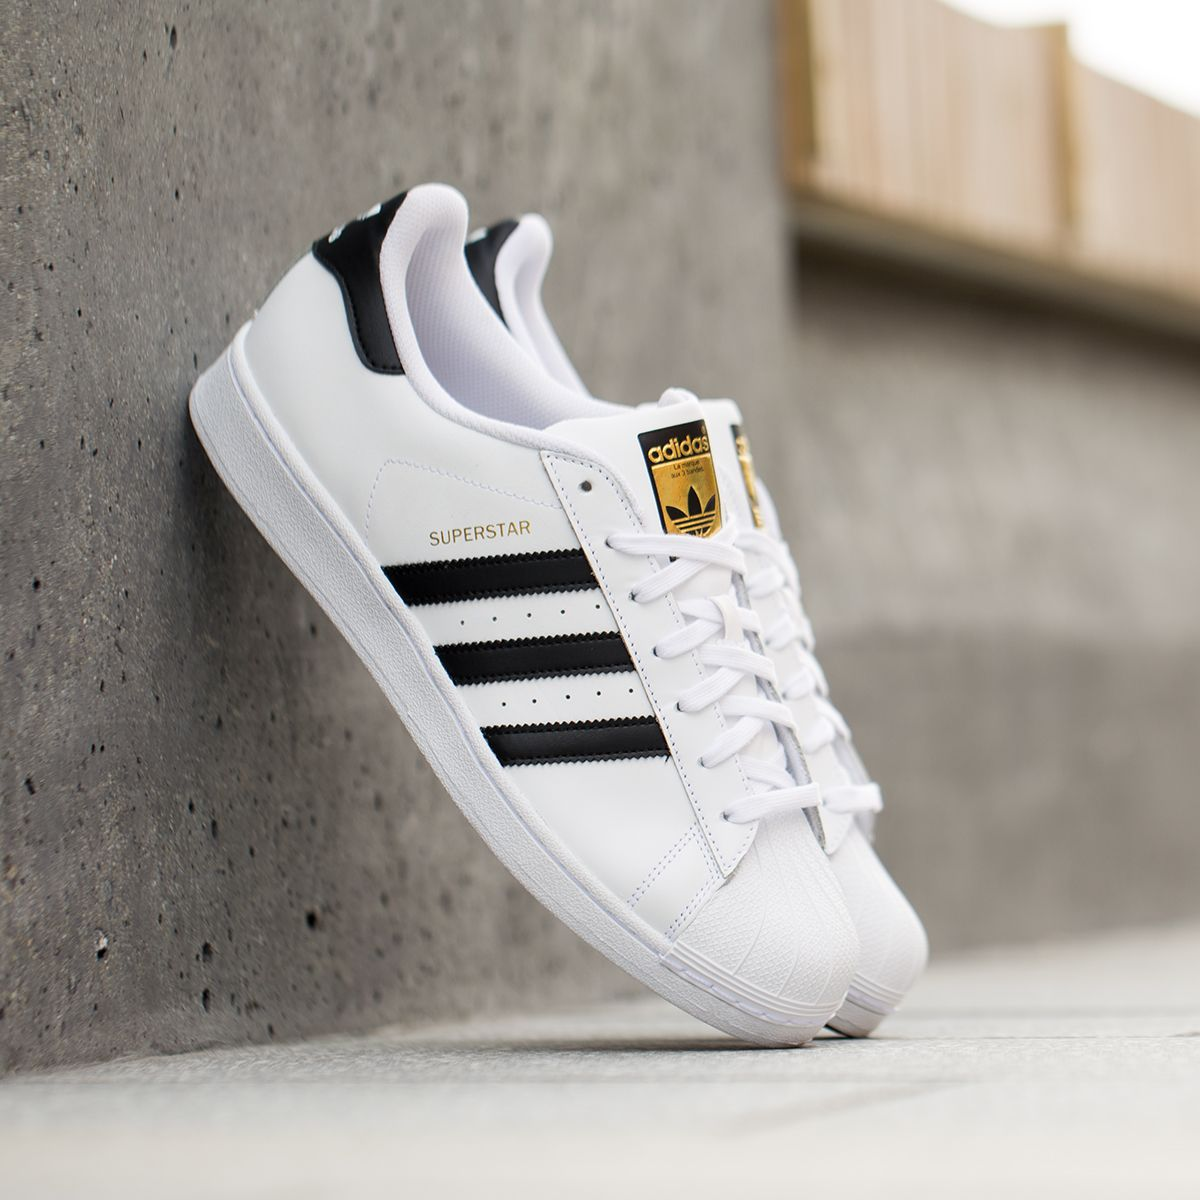 Pin by Edwin Morales on Things to wear in 2019 | Adidas